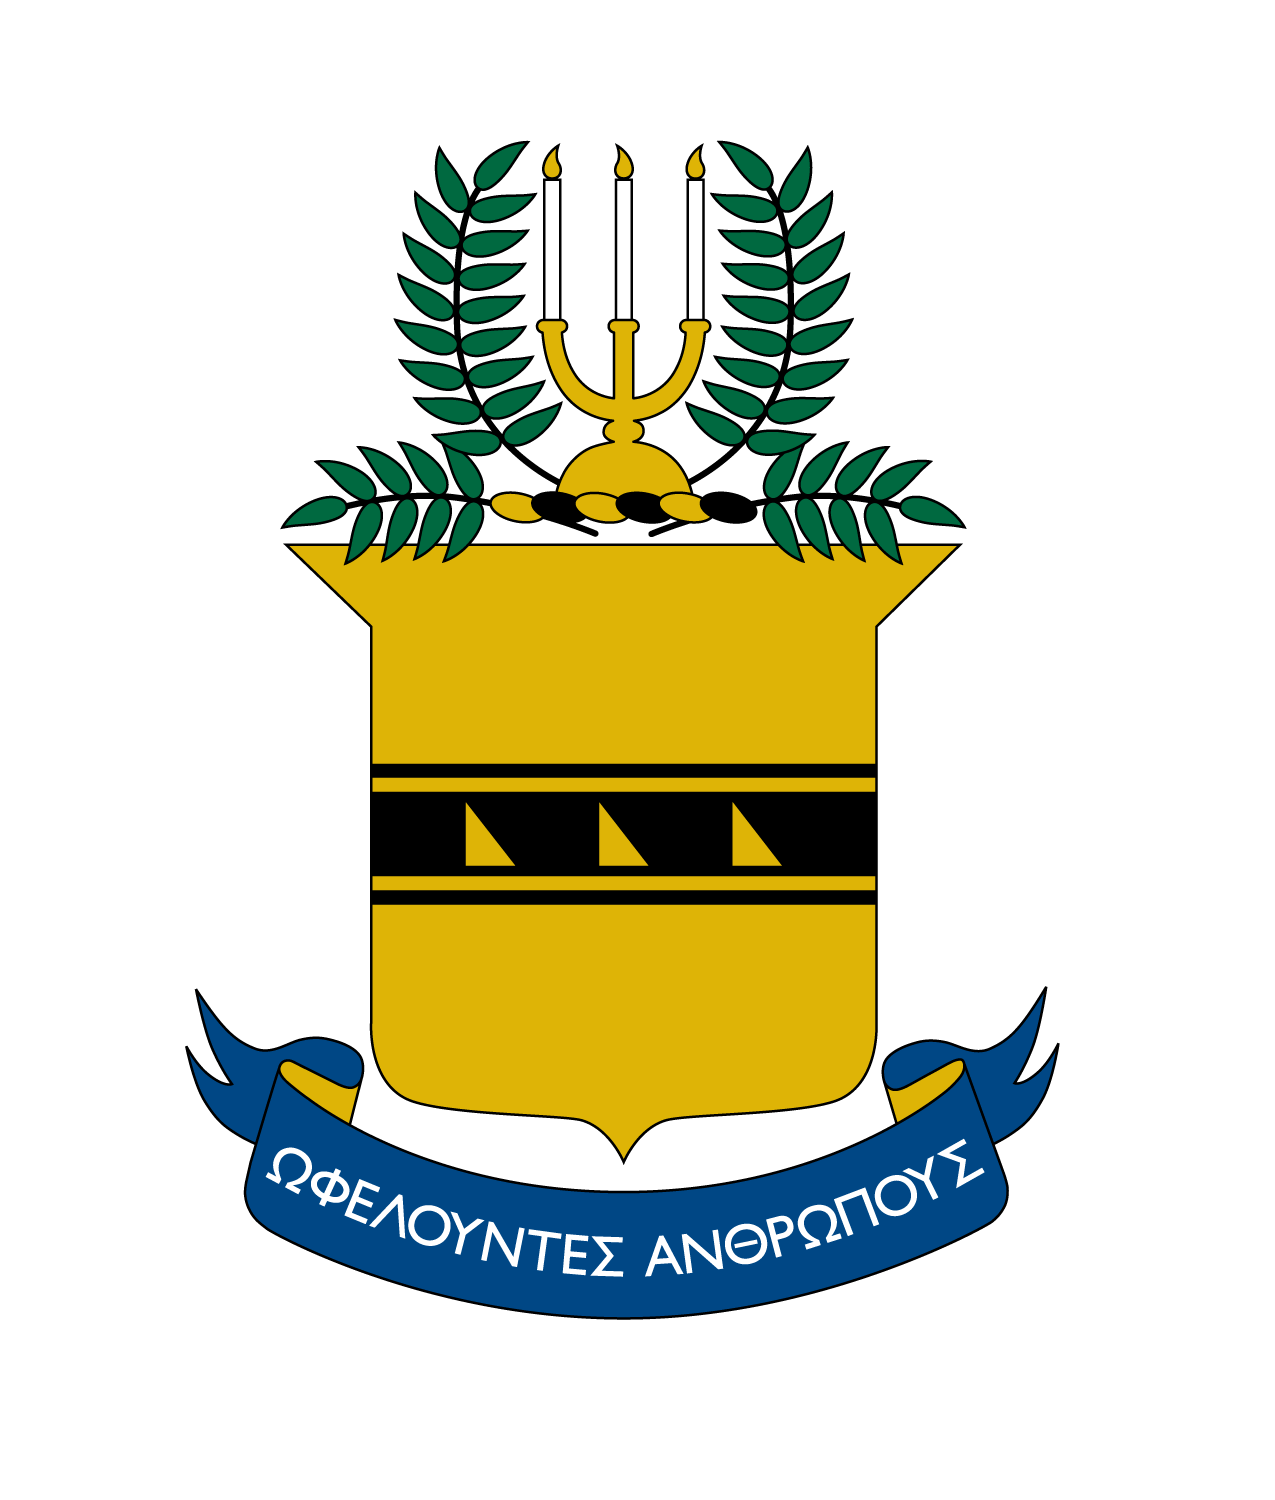 Graphics coat of arms acacia fraternity coat of arms full color eps png buycottarizona Image collections